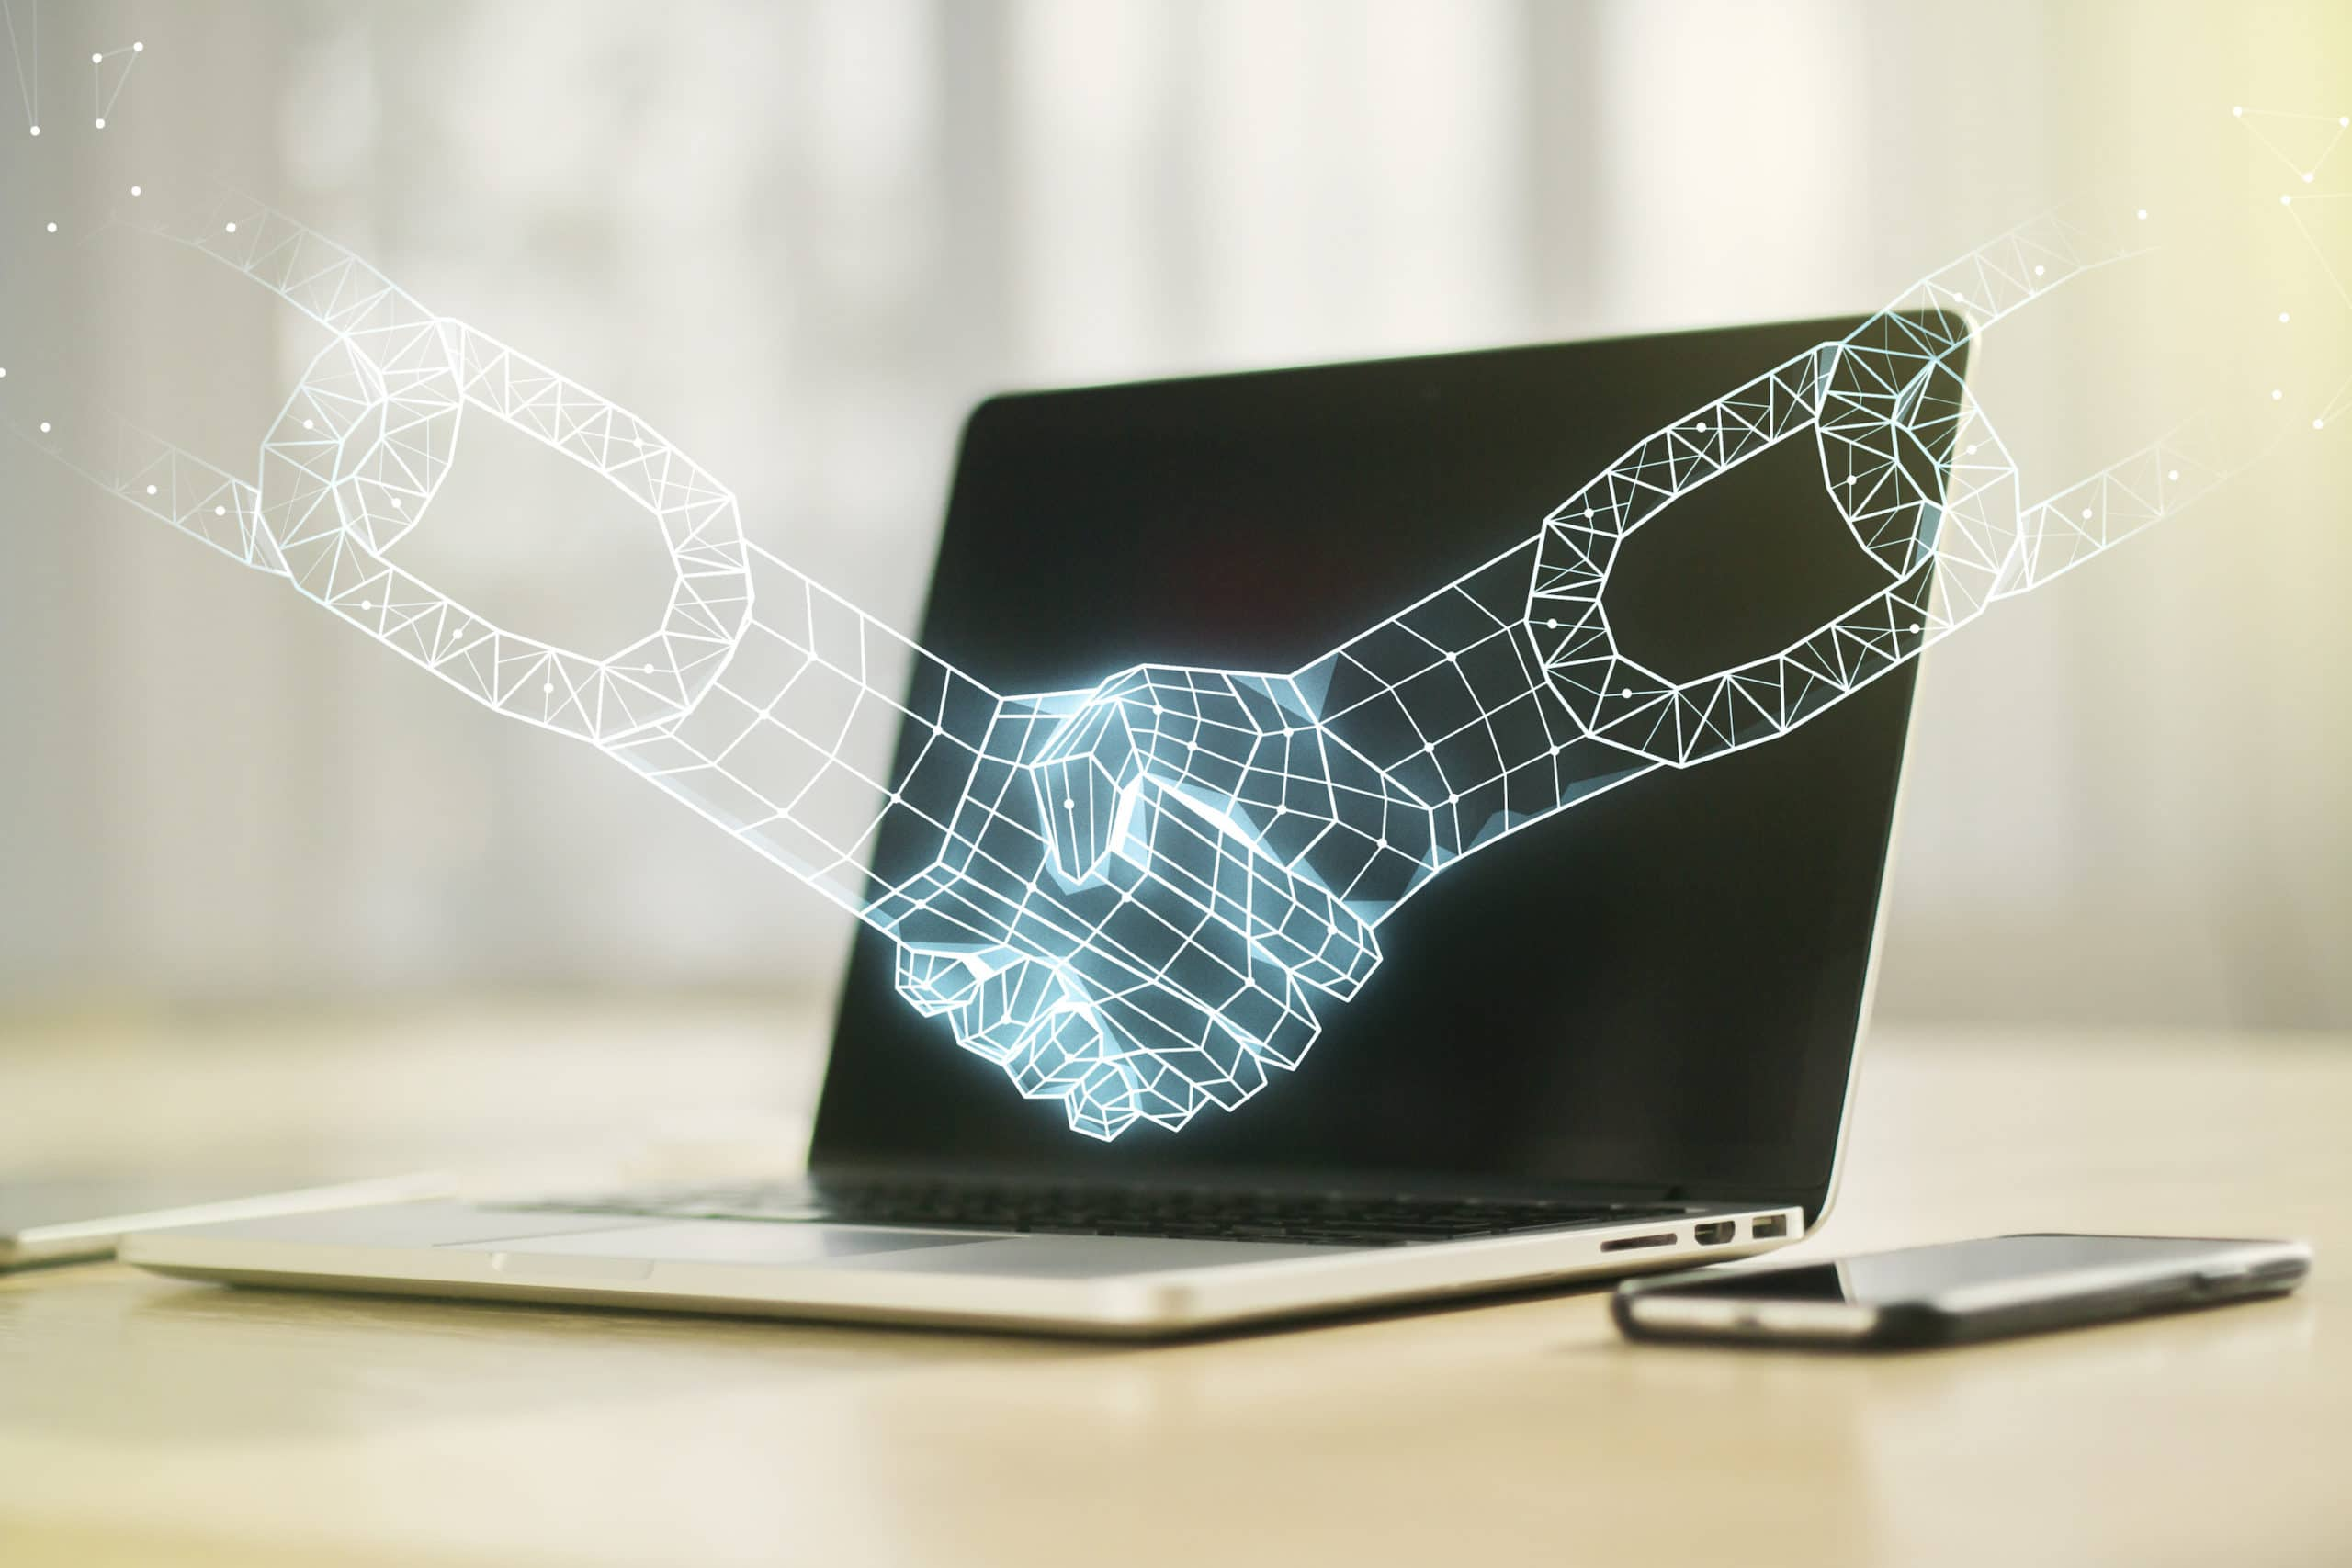 smart contracts definition. Creative abstract block chain technology sketch with handshake on modern laptop background, future technology and blockchain concept. Double exposure.